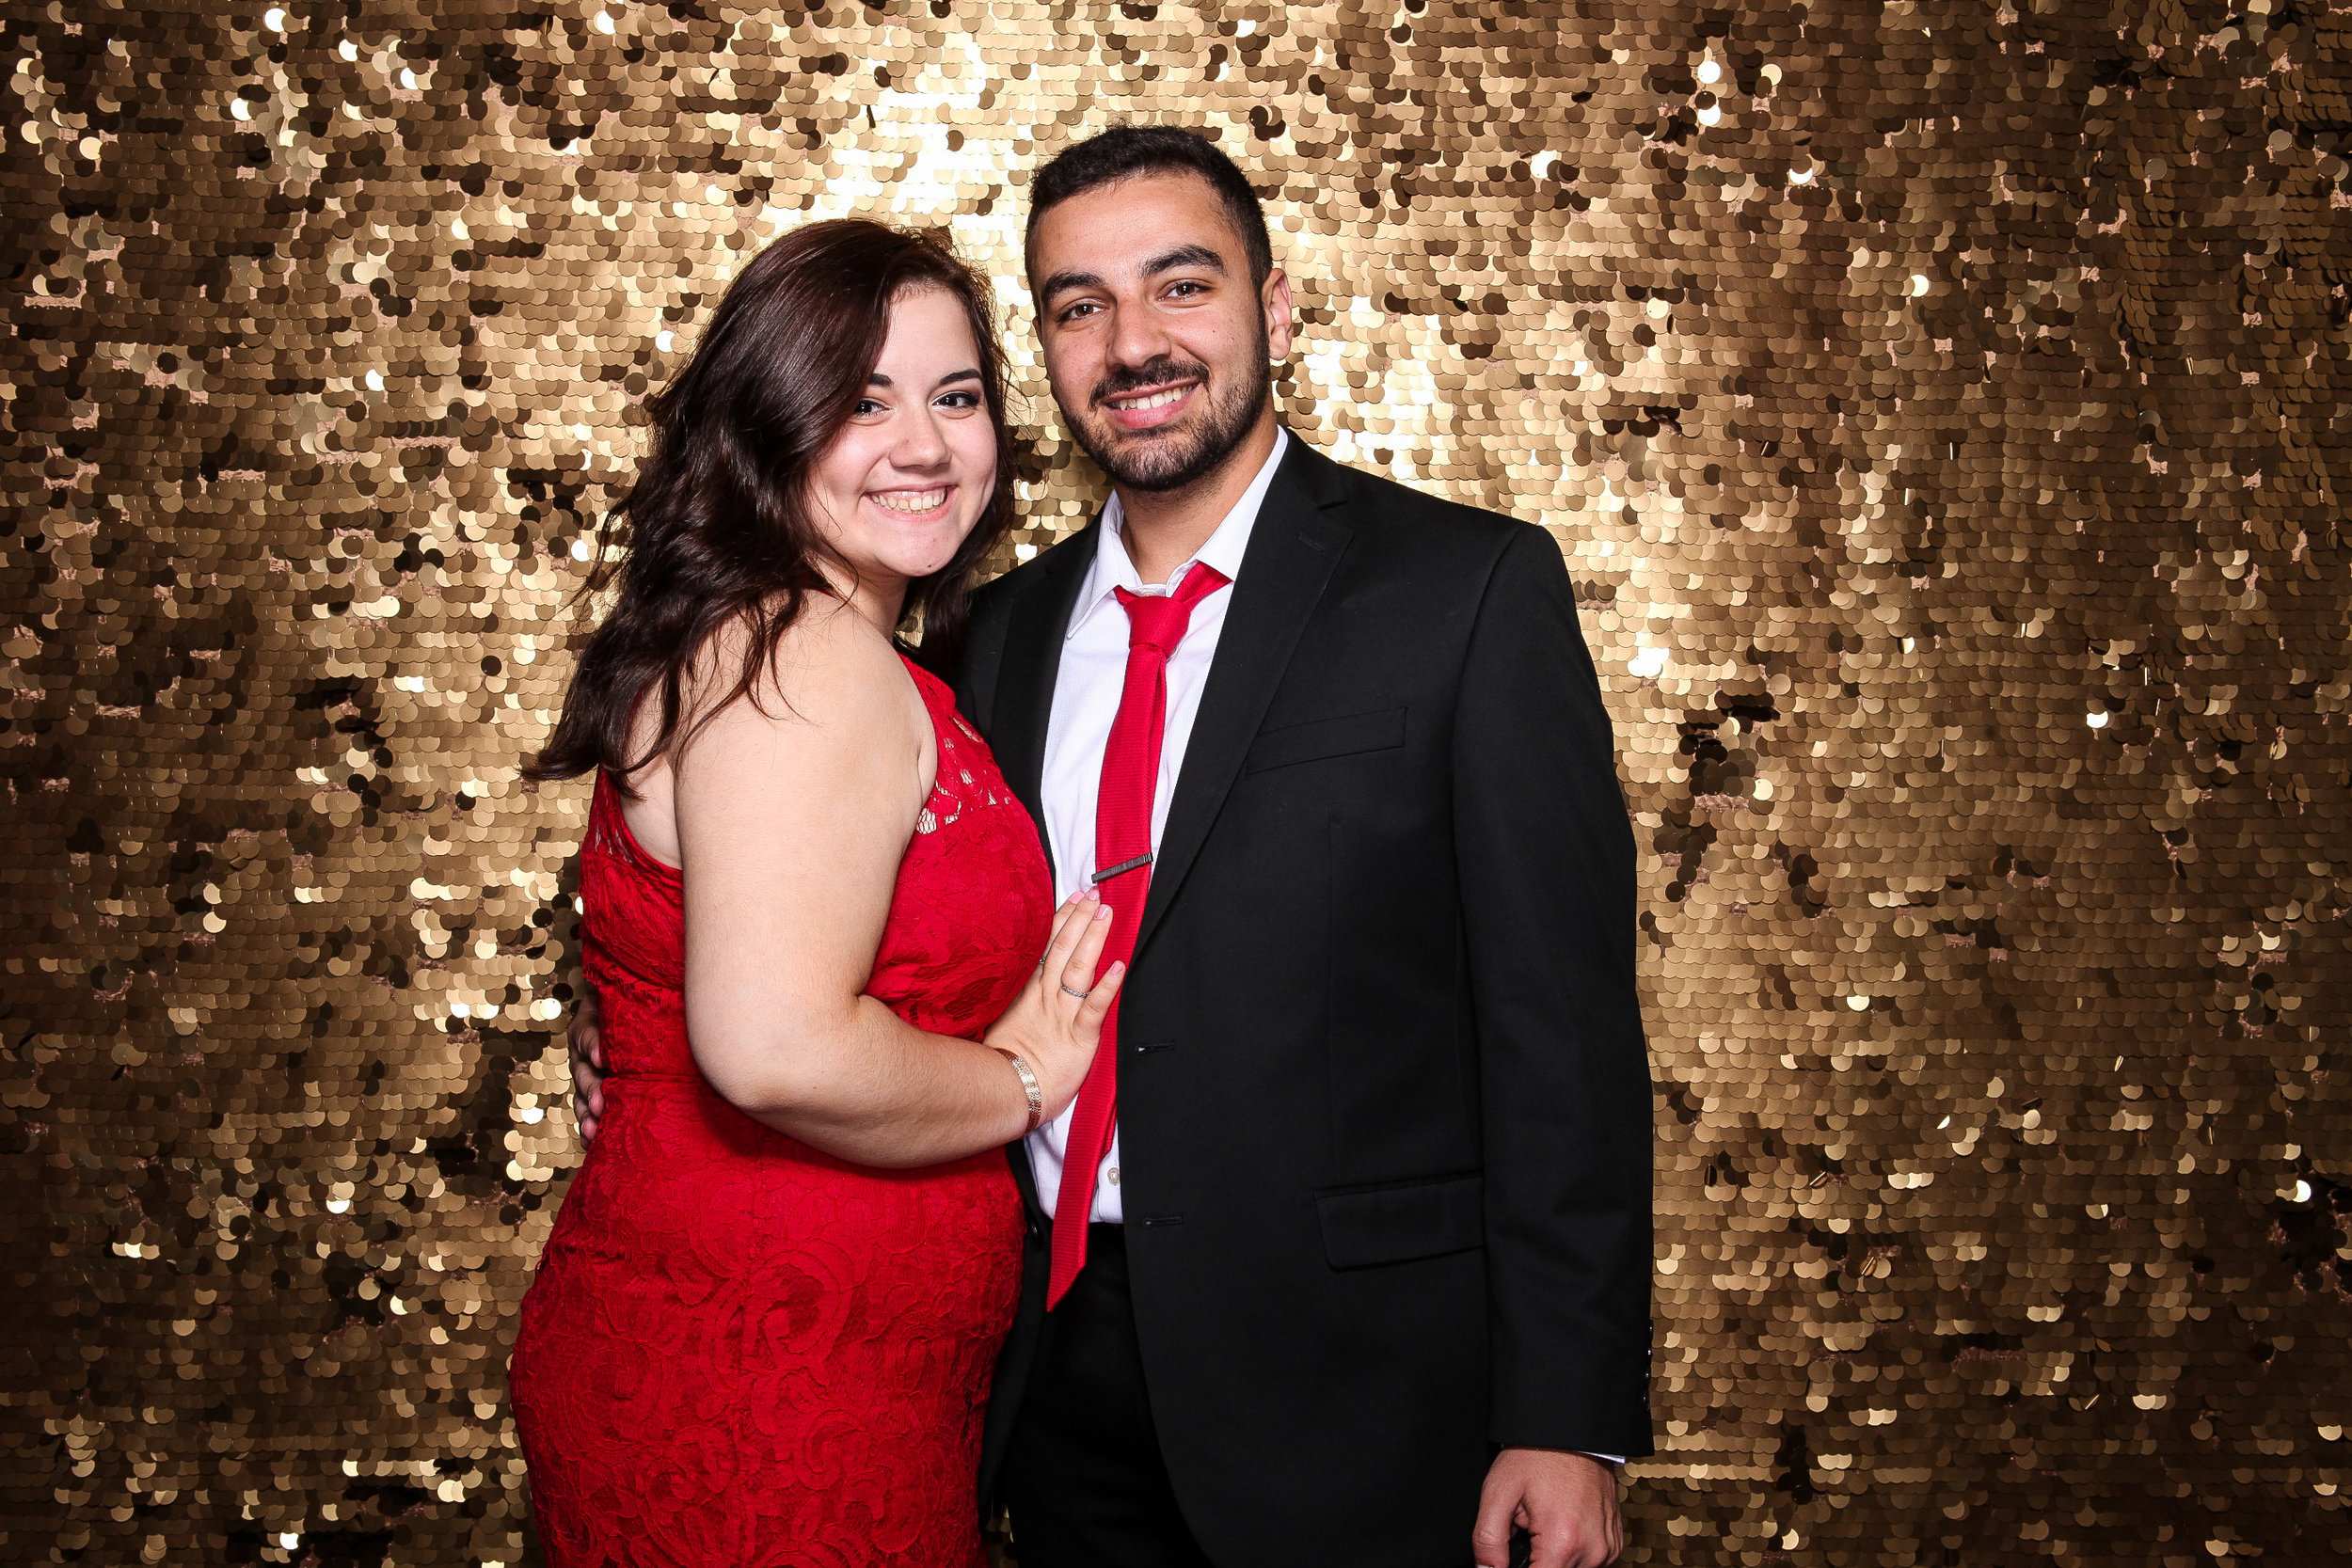 20190503_Adelphi_Senior_Formal-255.jpg